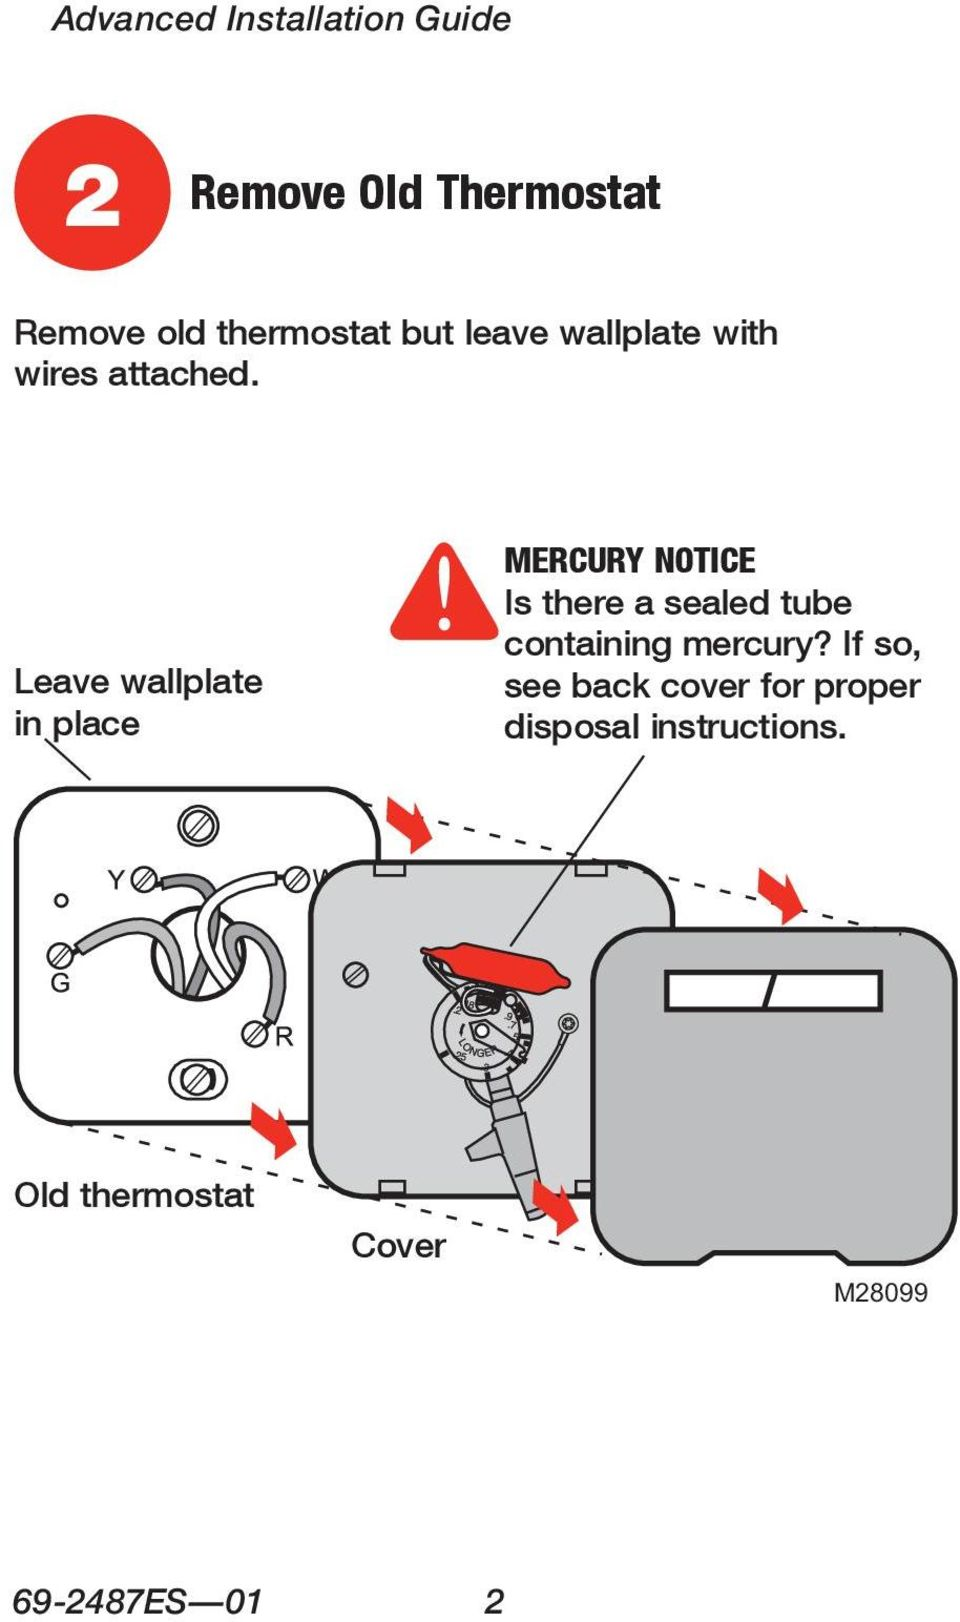 Leave wallplate in place MERCURY NOTICE Is there a sealed tube containing